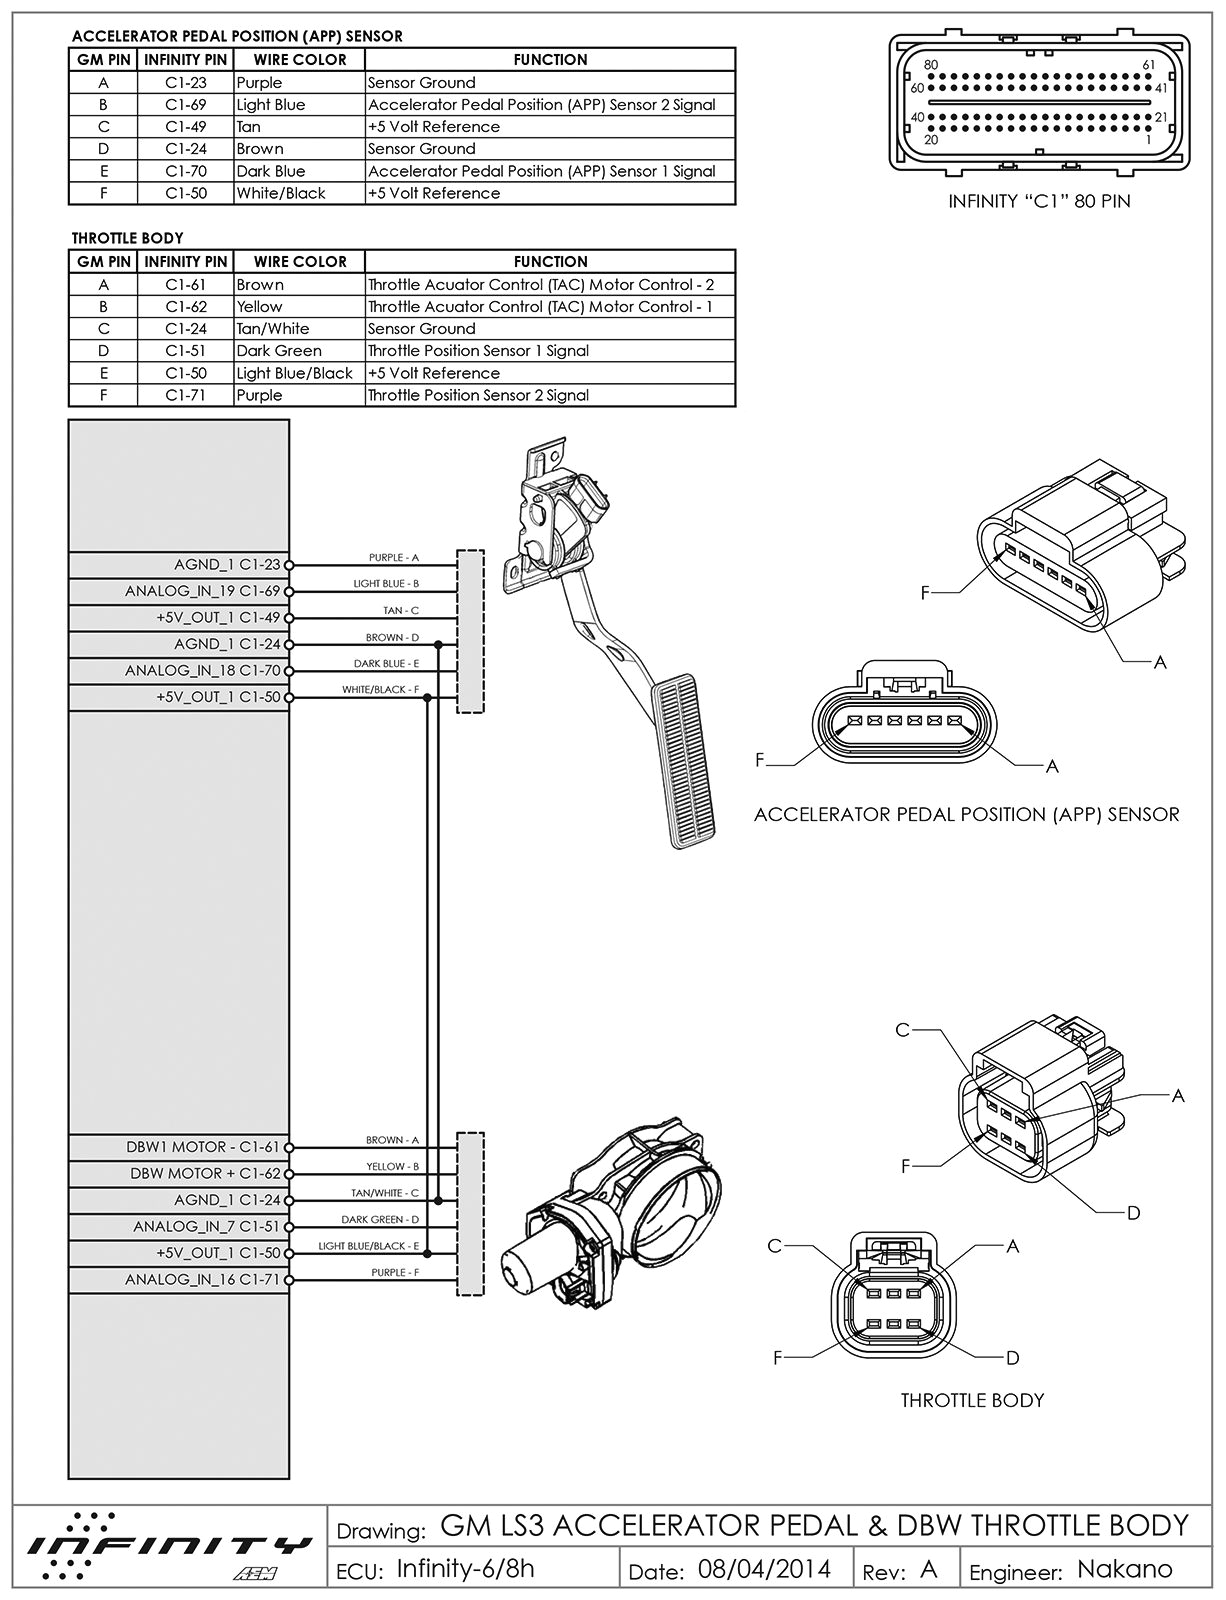 ls3 wiring harness schematic wiring diagram ls1 injector wire harness diagram furthermore ls3 map sensor wiring in